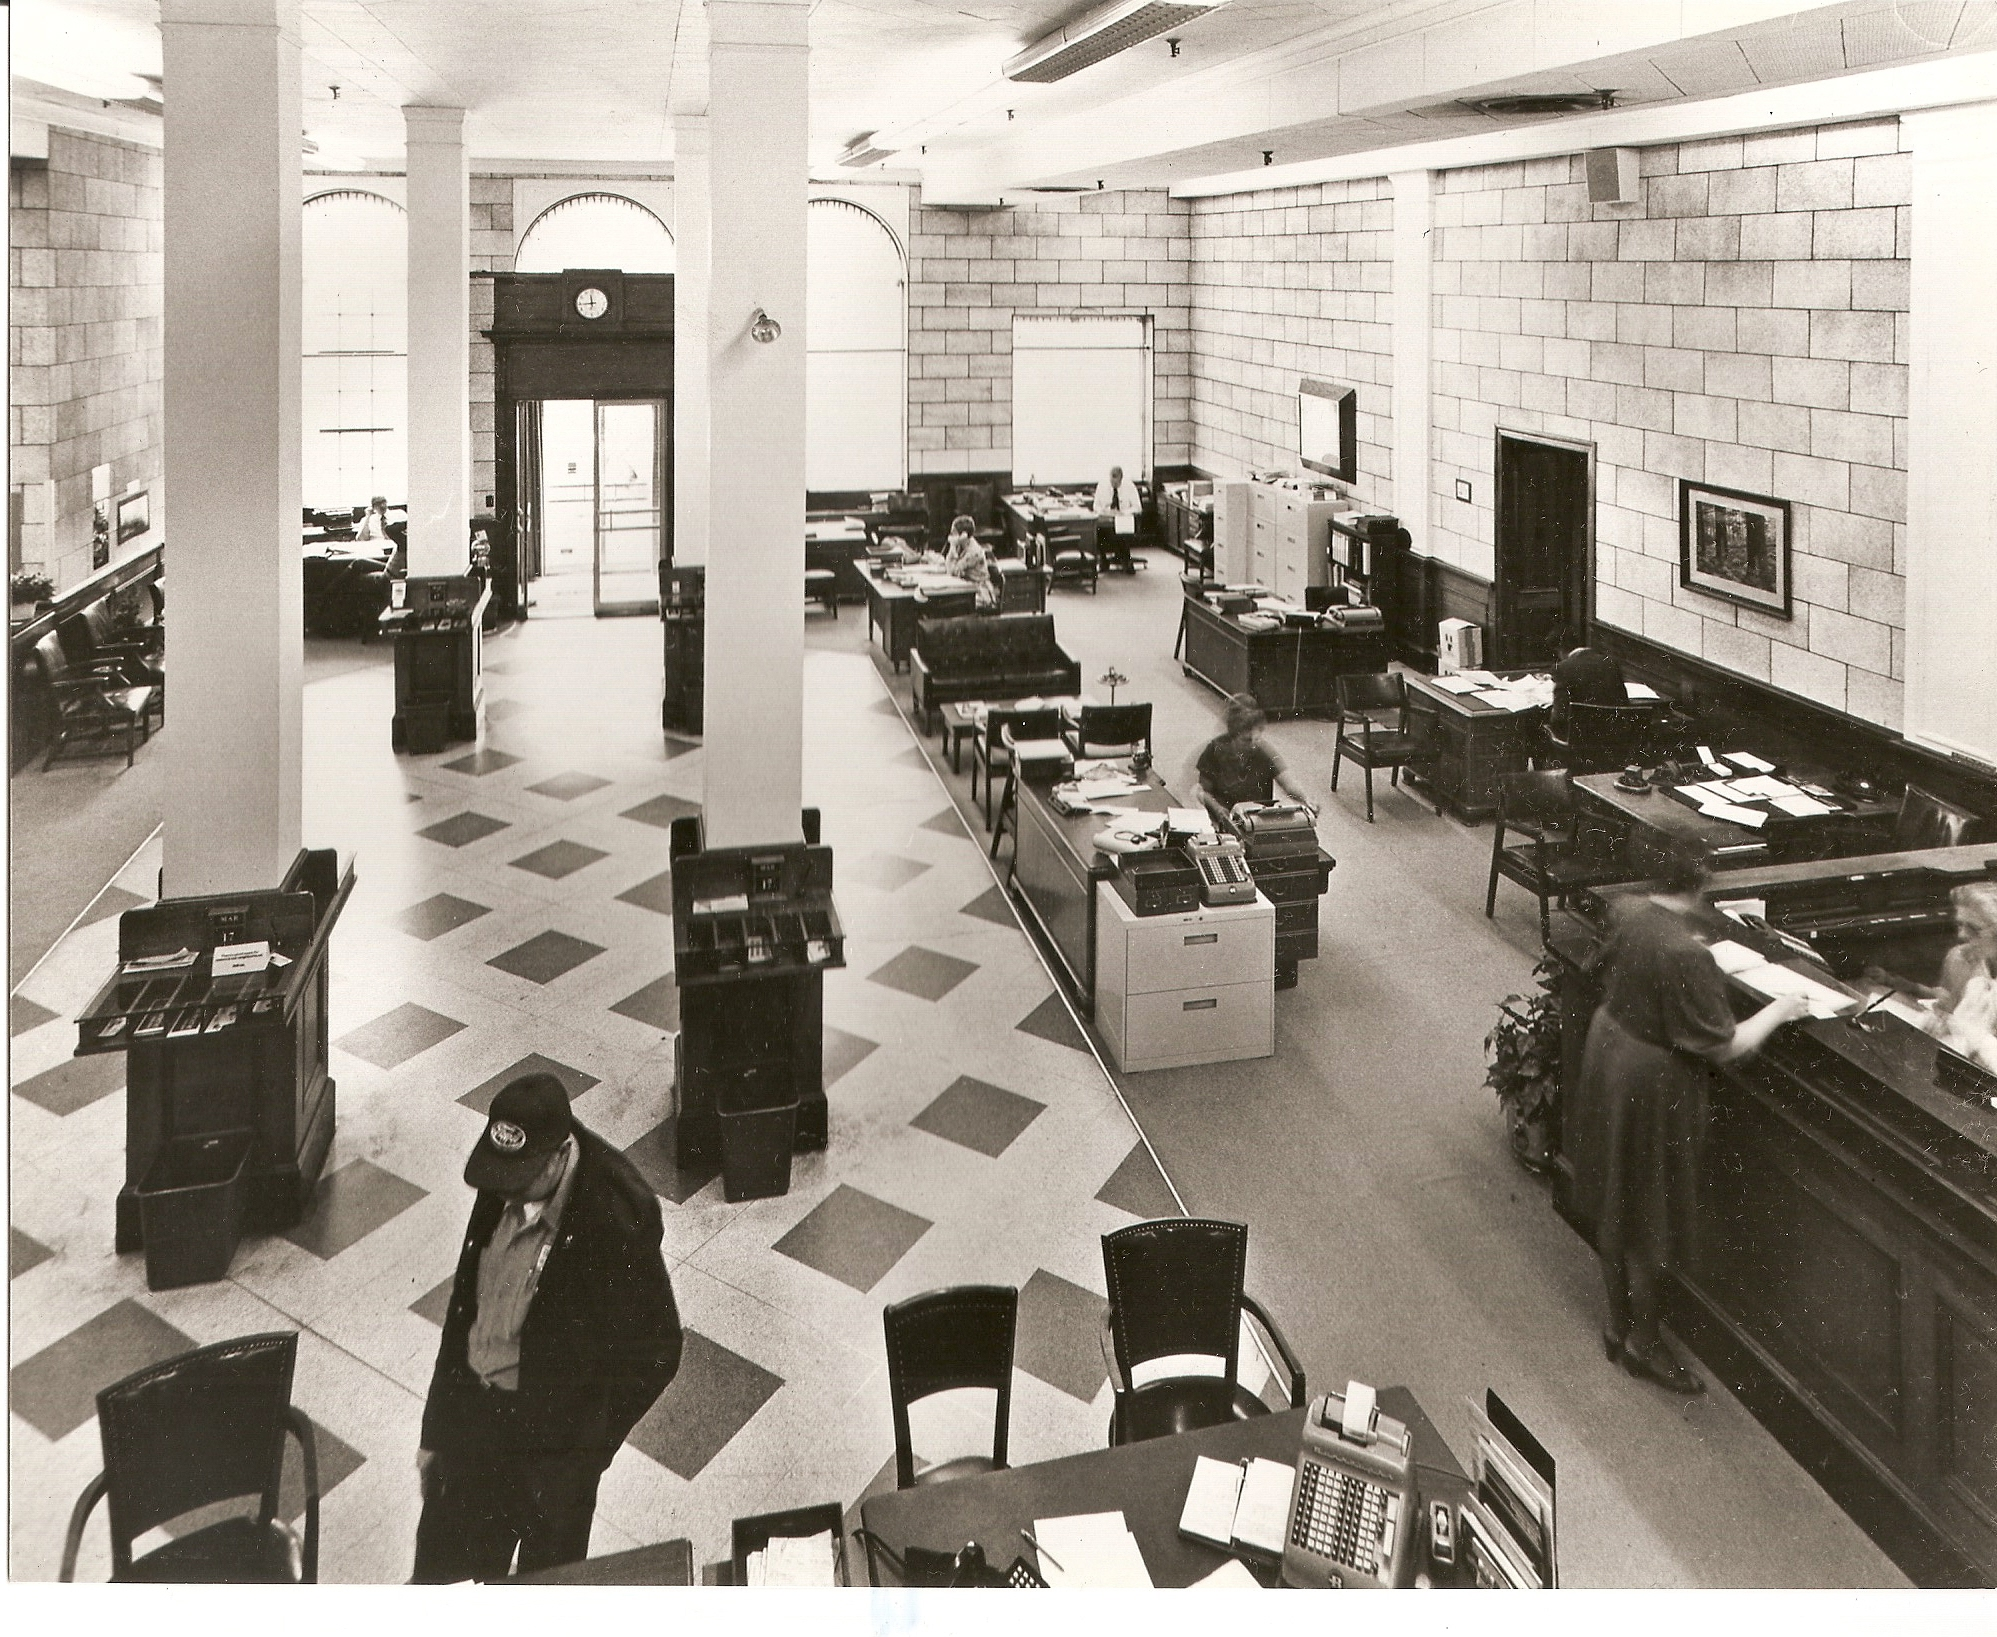 Bank interior view 1 (before)